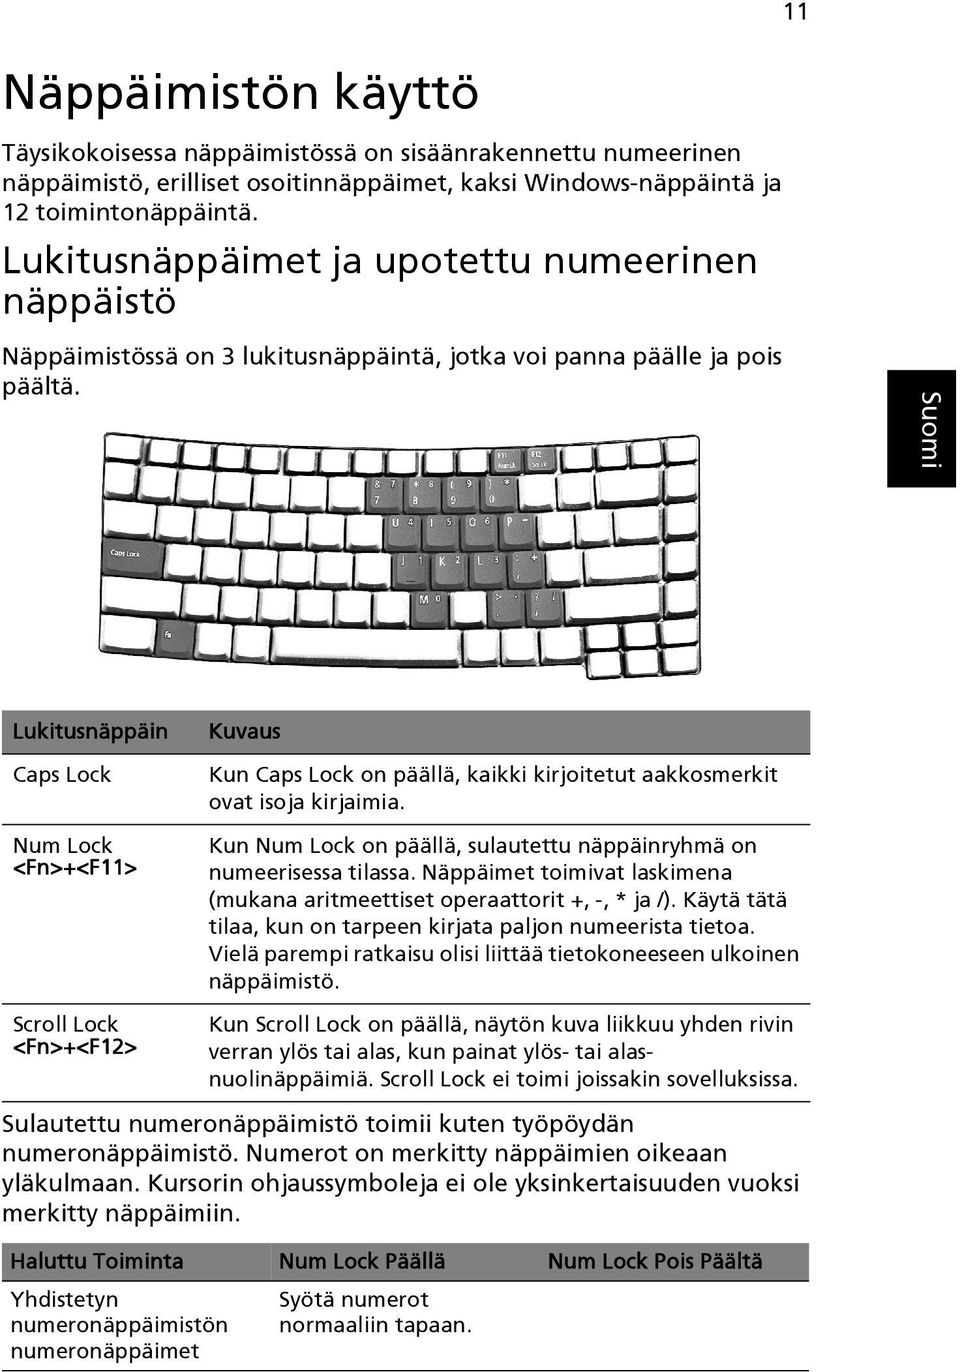 Lukitusnäppäin Caps Lock Num Lock <Fn>+<F11> Scroll Lock <Fn>+<F12> Kuvaus Kun Caps Lock on päällä, kaikki kirjoitetut aakkosmerkit ovat isoja kirjaimia.